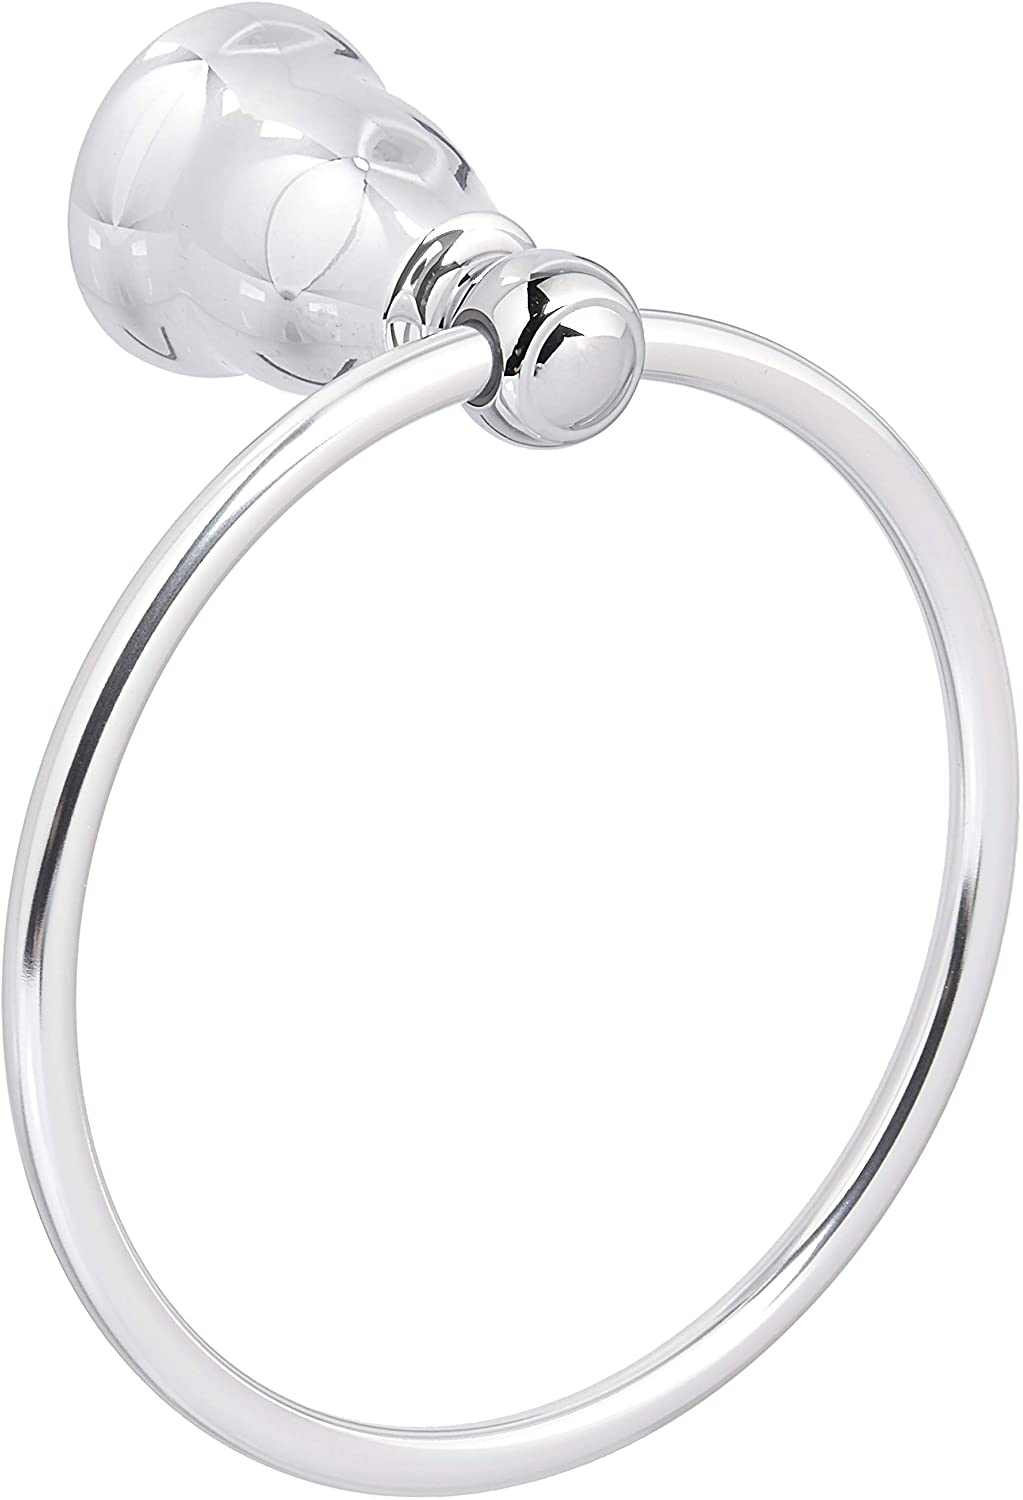 Moen/Faucets YB1086CH Traditional Chrome towel ring